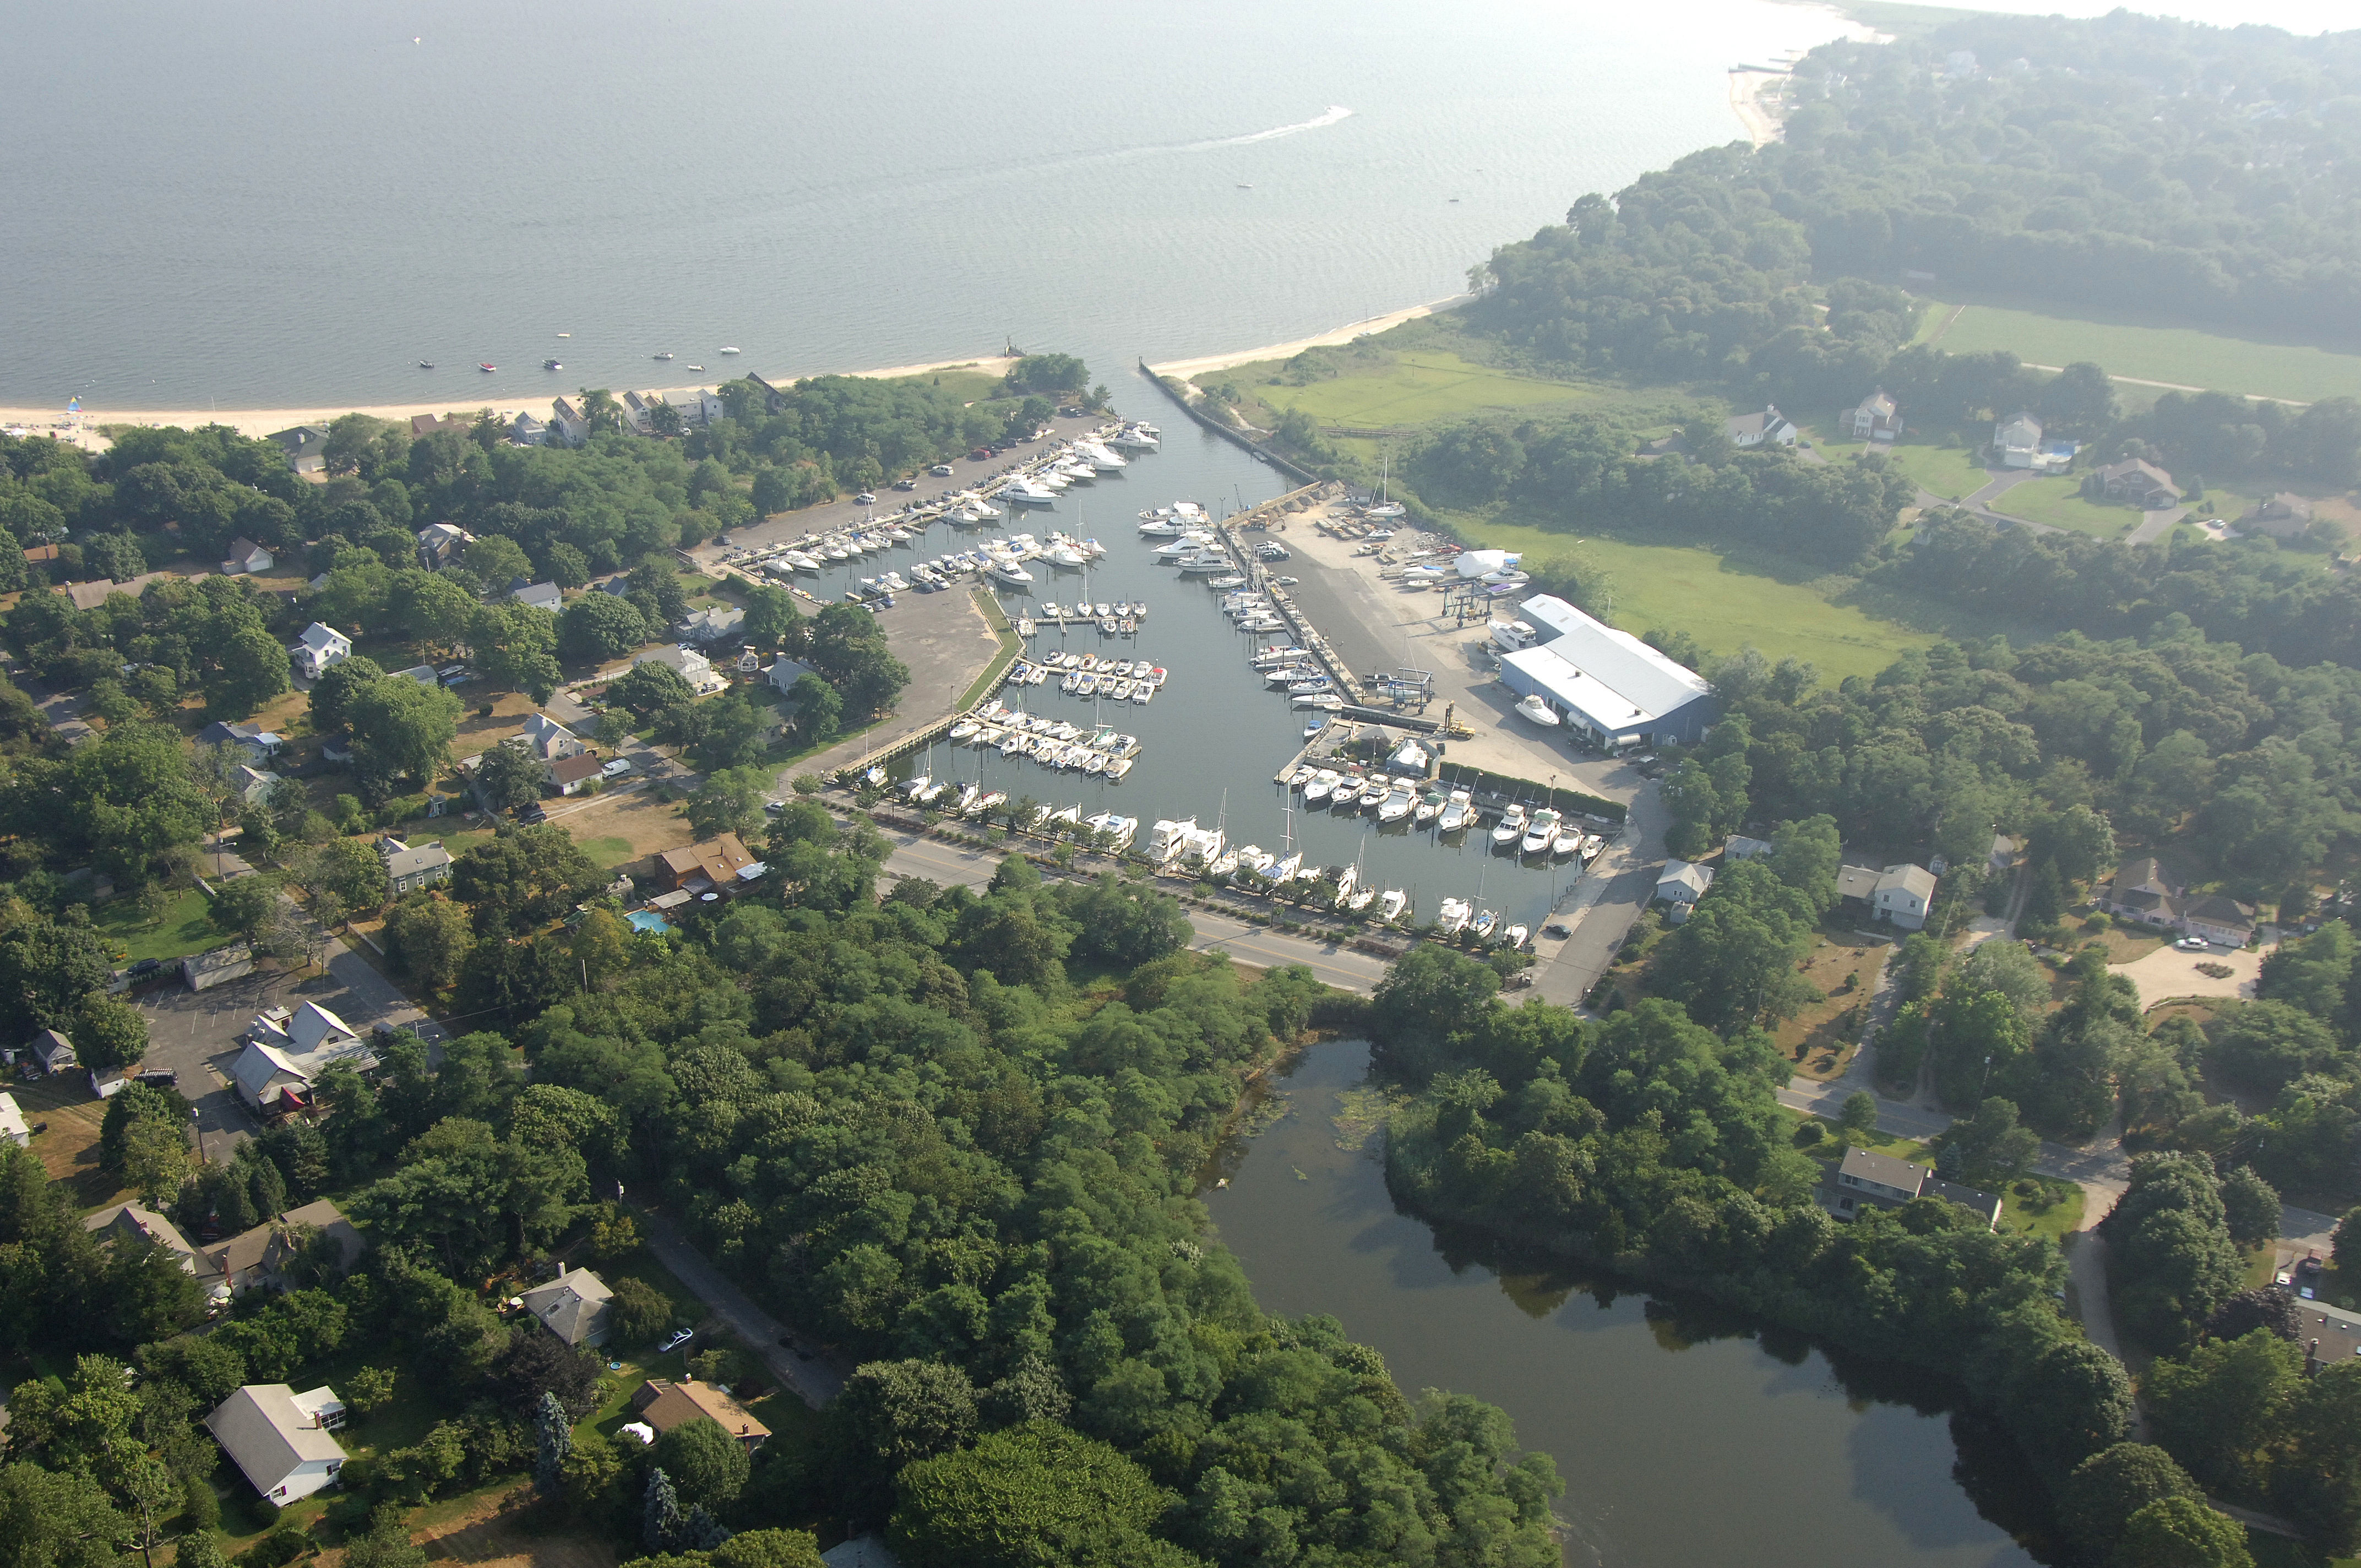 south jamesport See homes for sale in south jamesport, ny homefindercom is your local home source with millions of listings, and thousands of open houses updated daily.